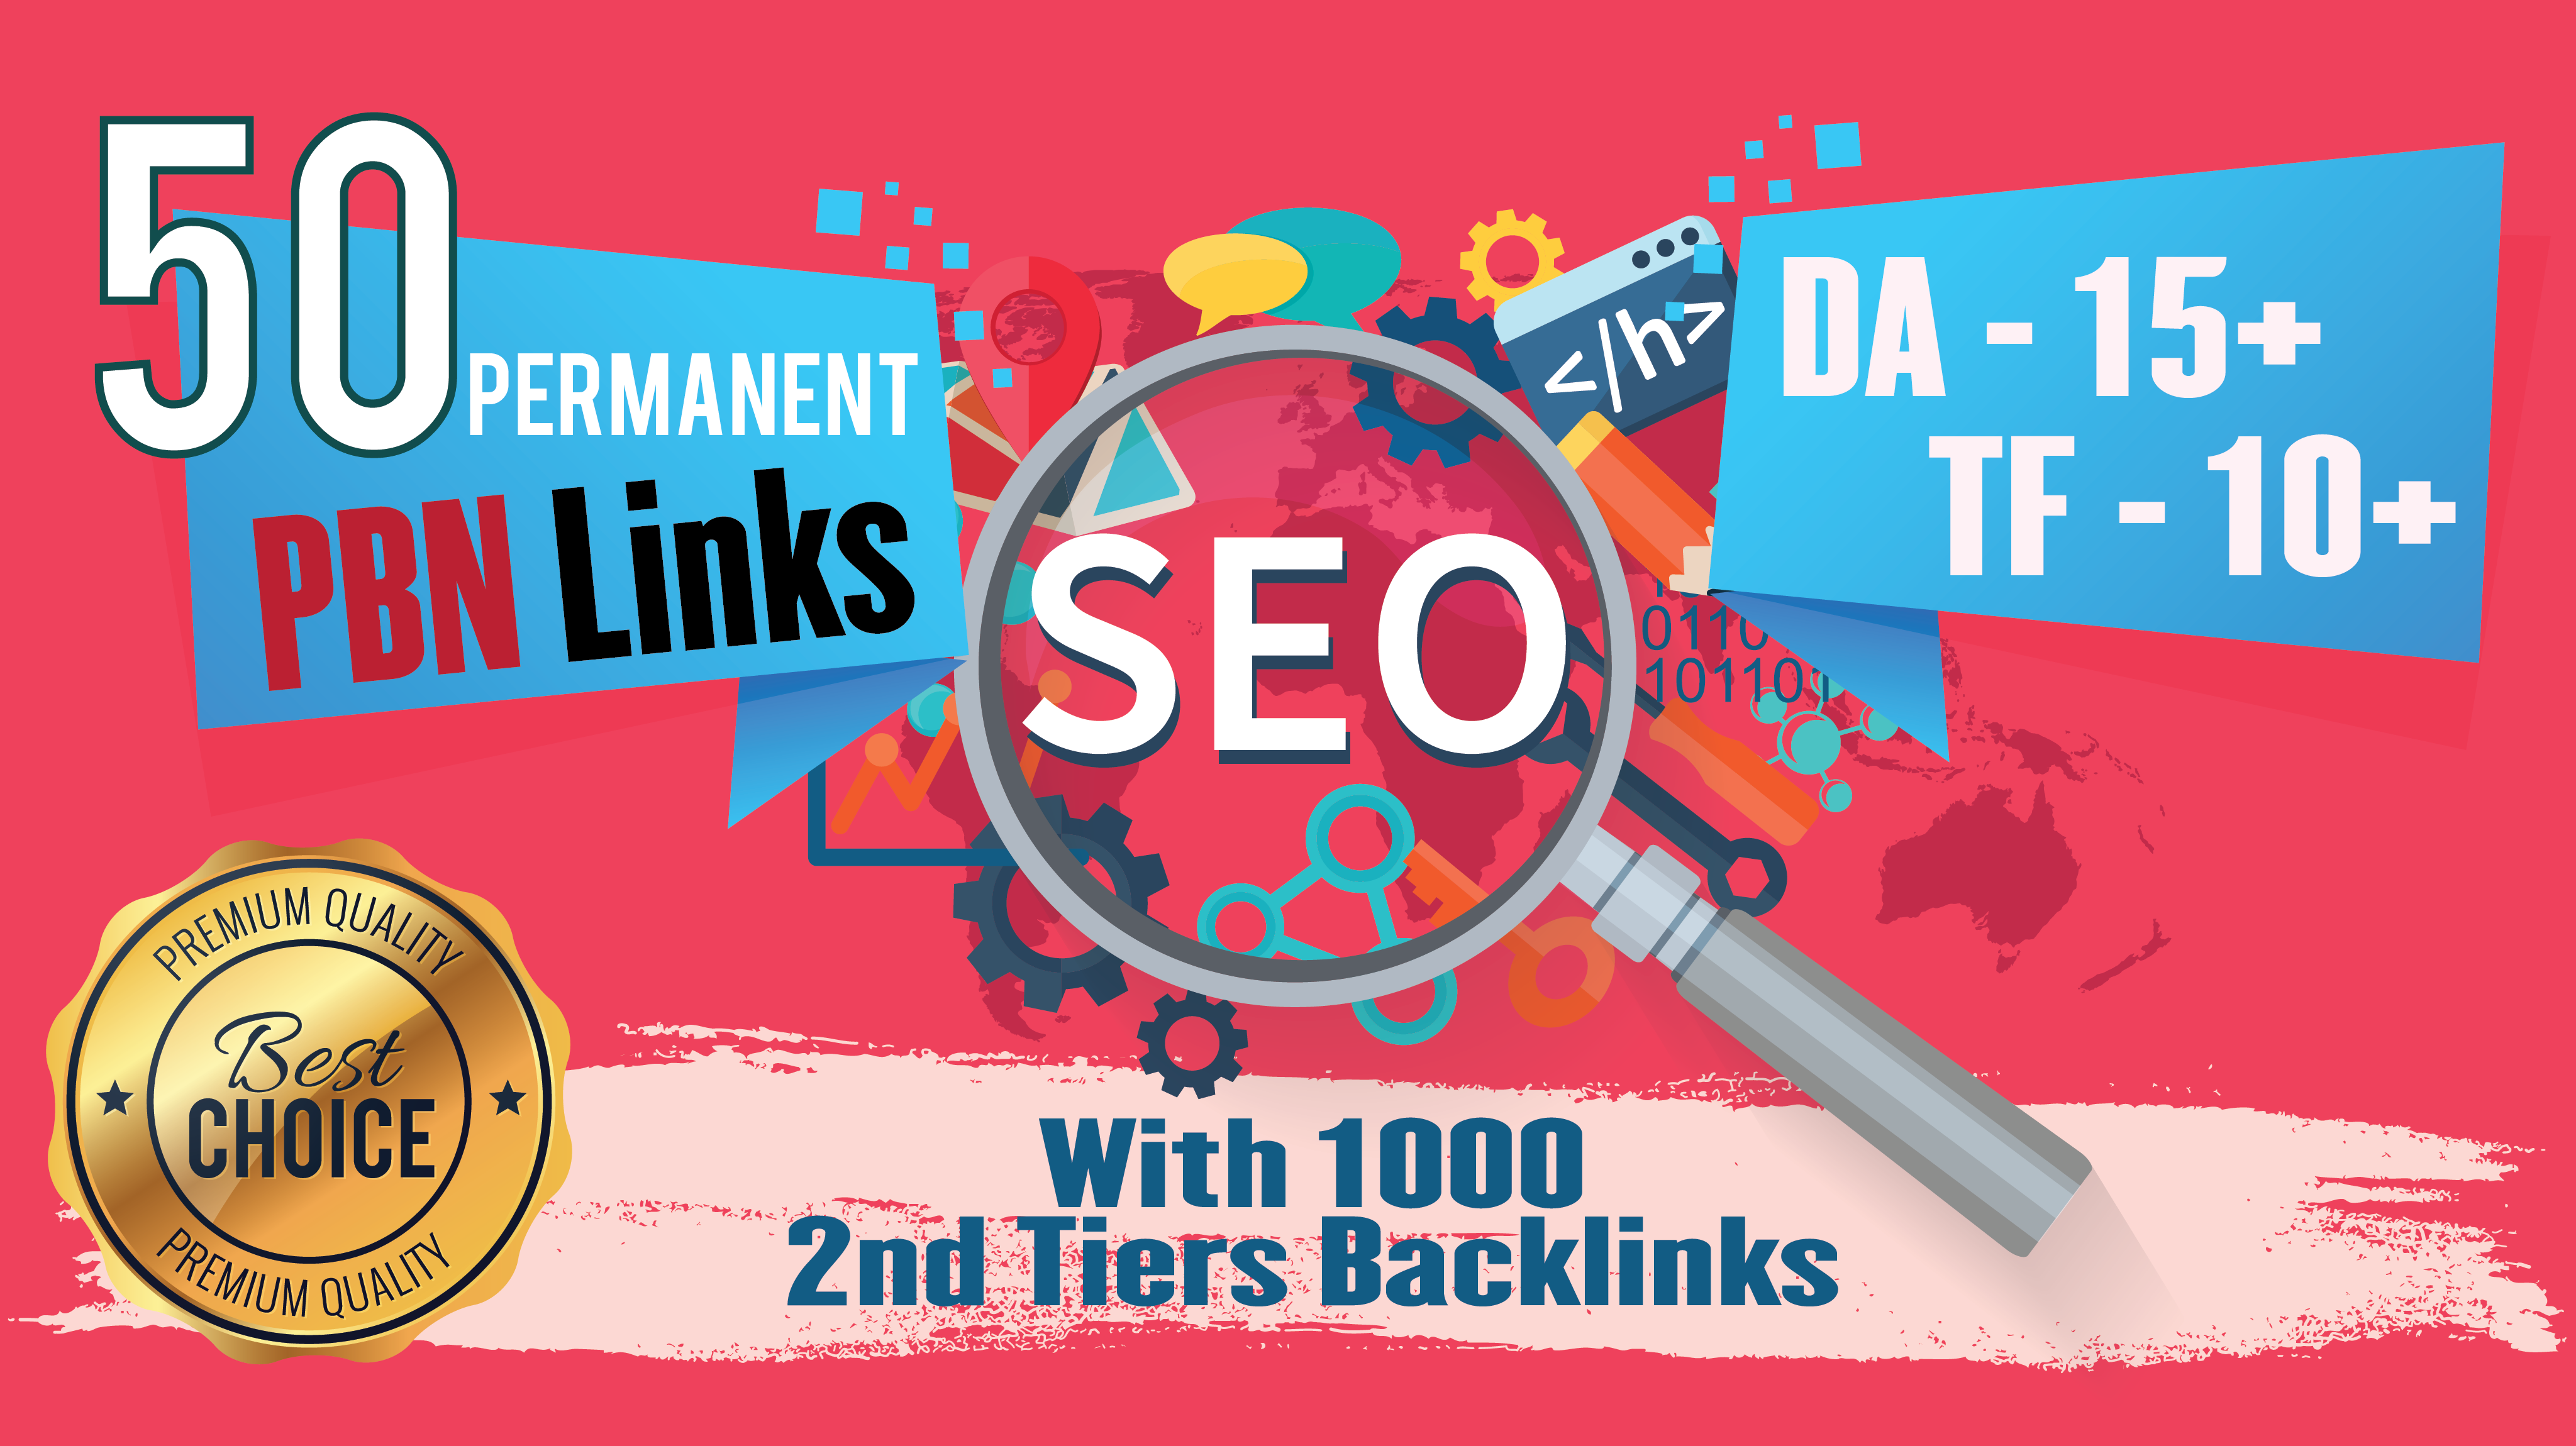 2020 Powerful 50 Homepage Dofollow PBN With 1000 2nd Tiers Backlinks